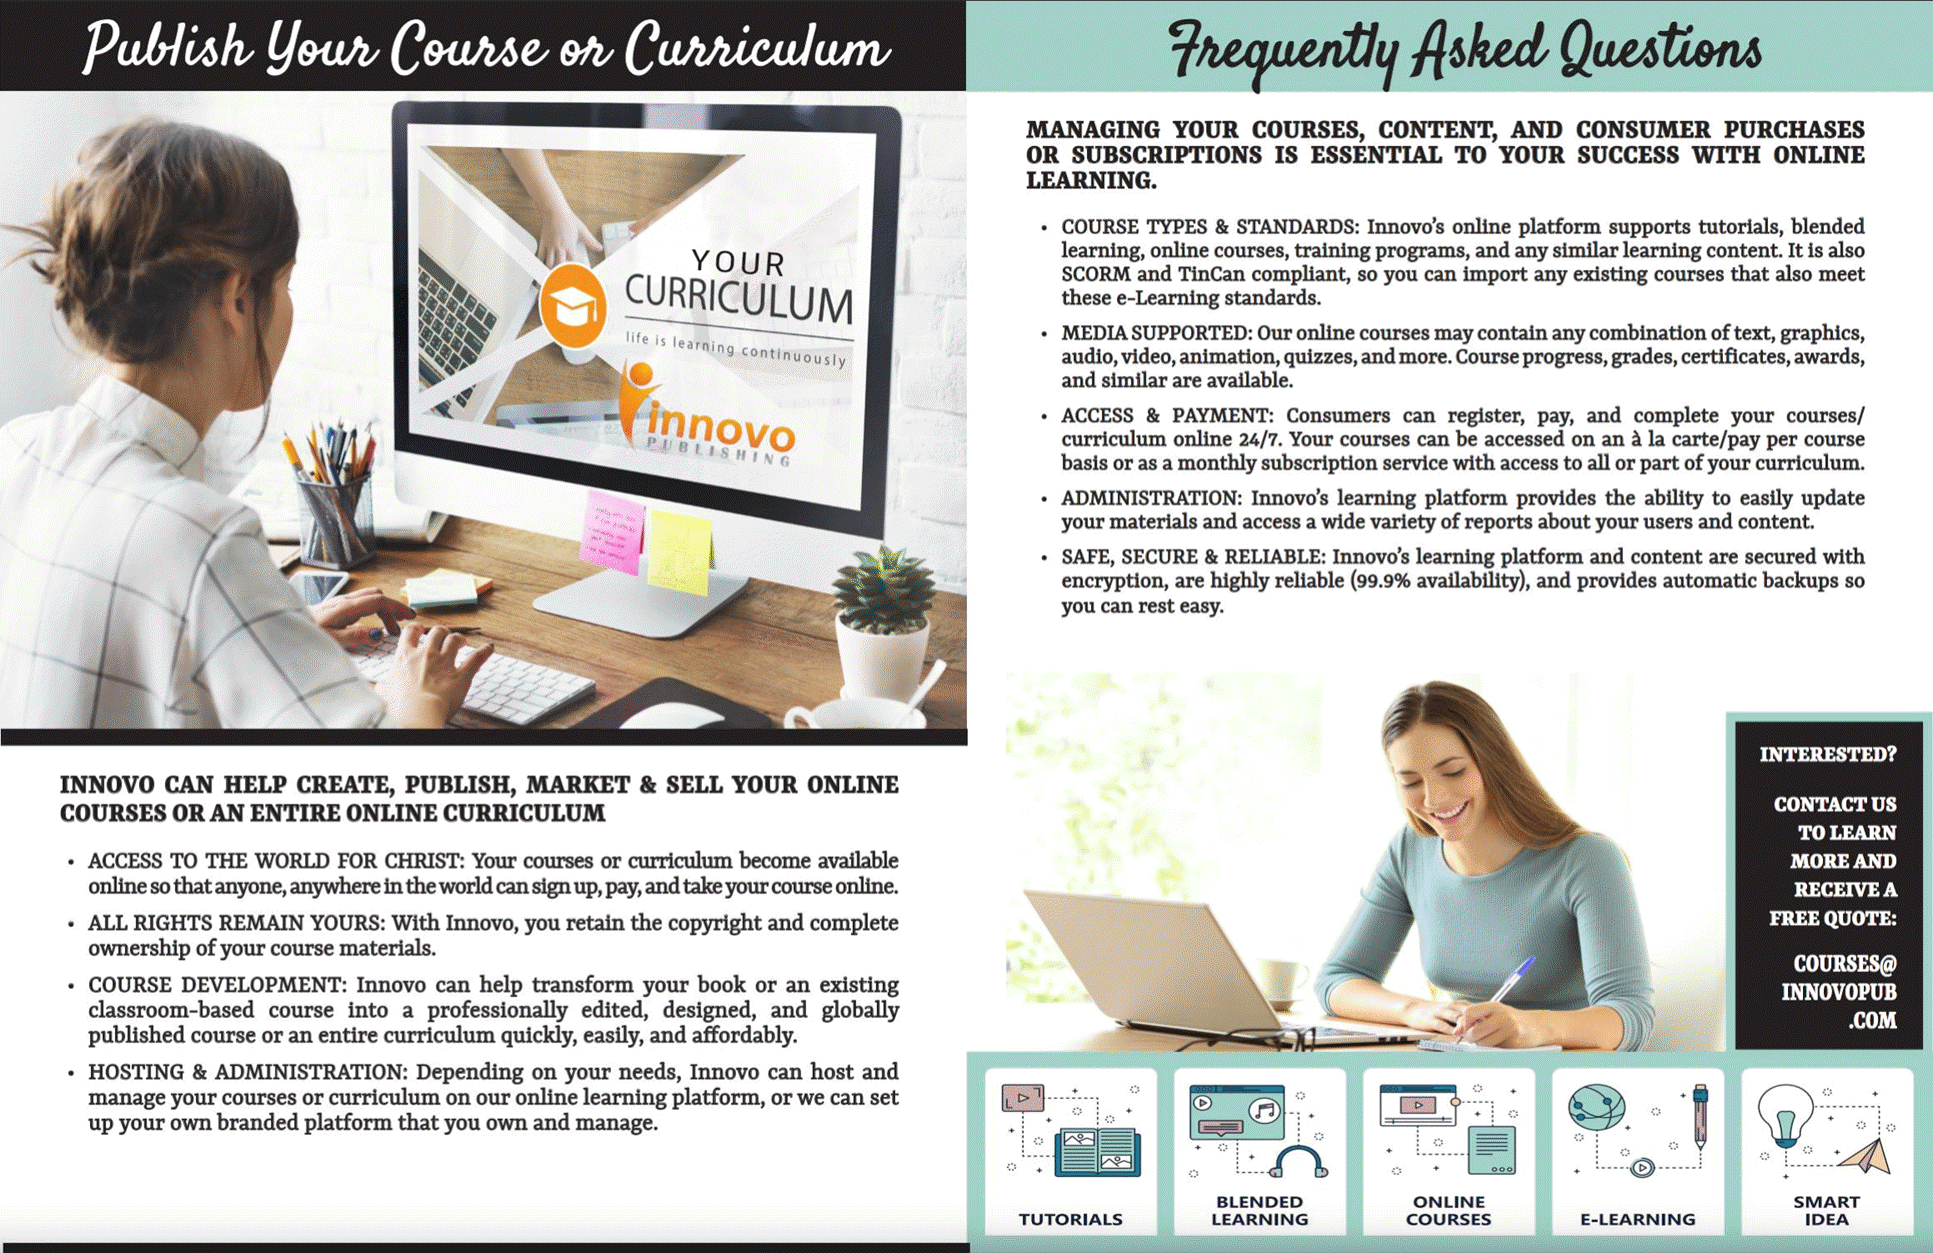 Innovo Course and Curricula Publishing for Christian Authors, Artists, and Ministries